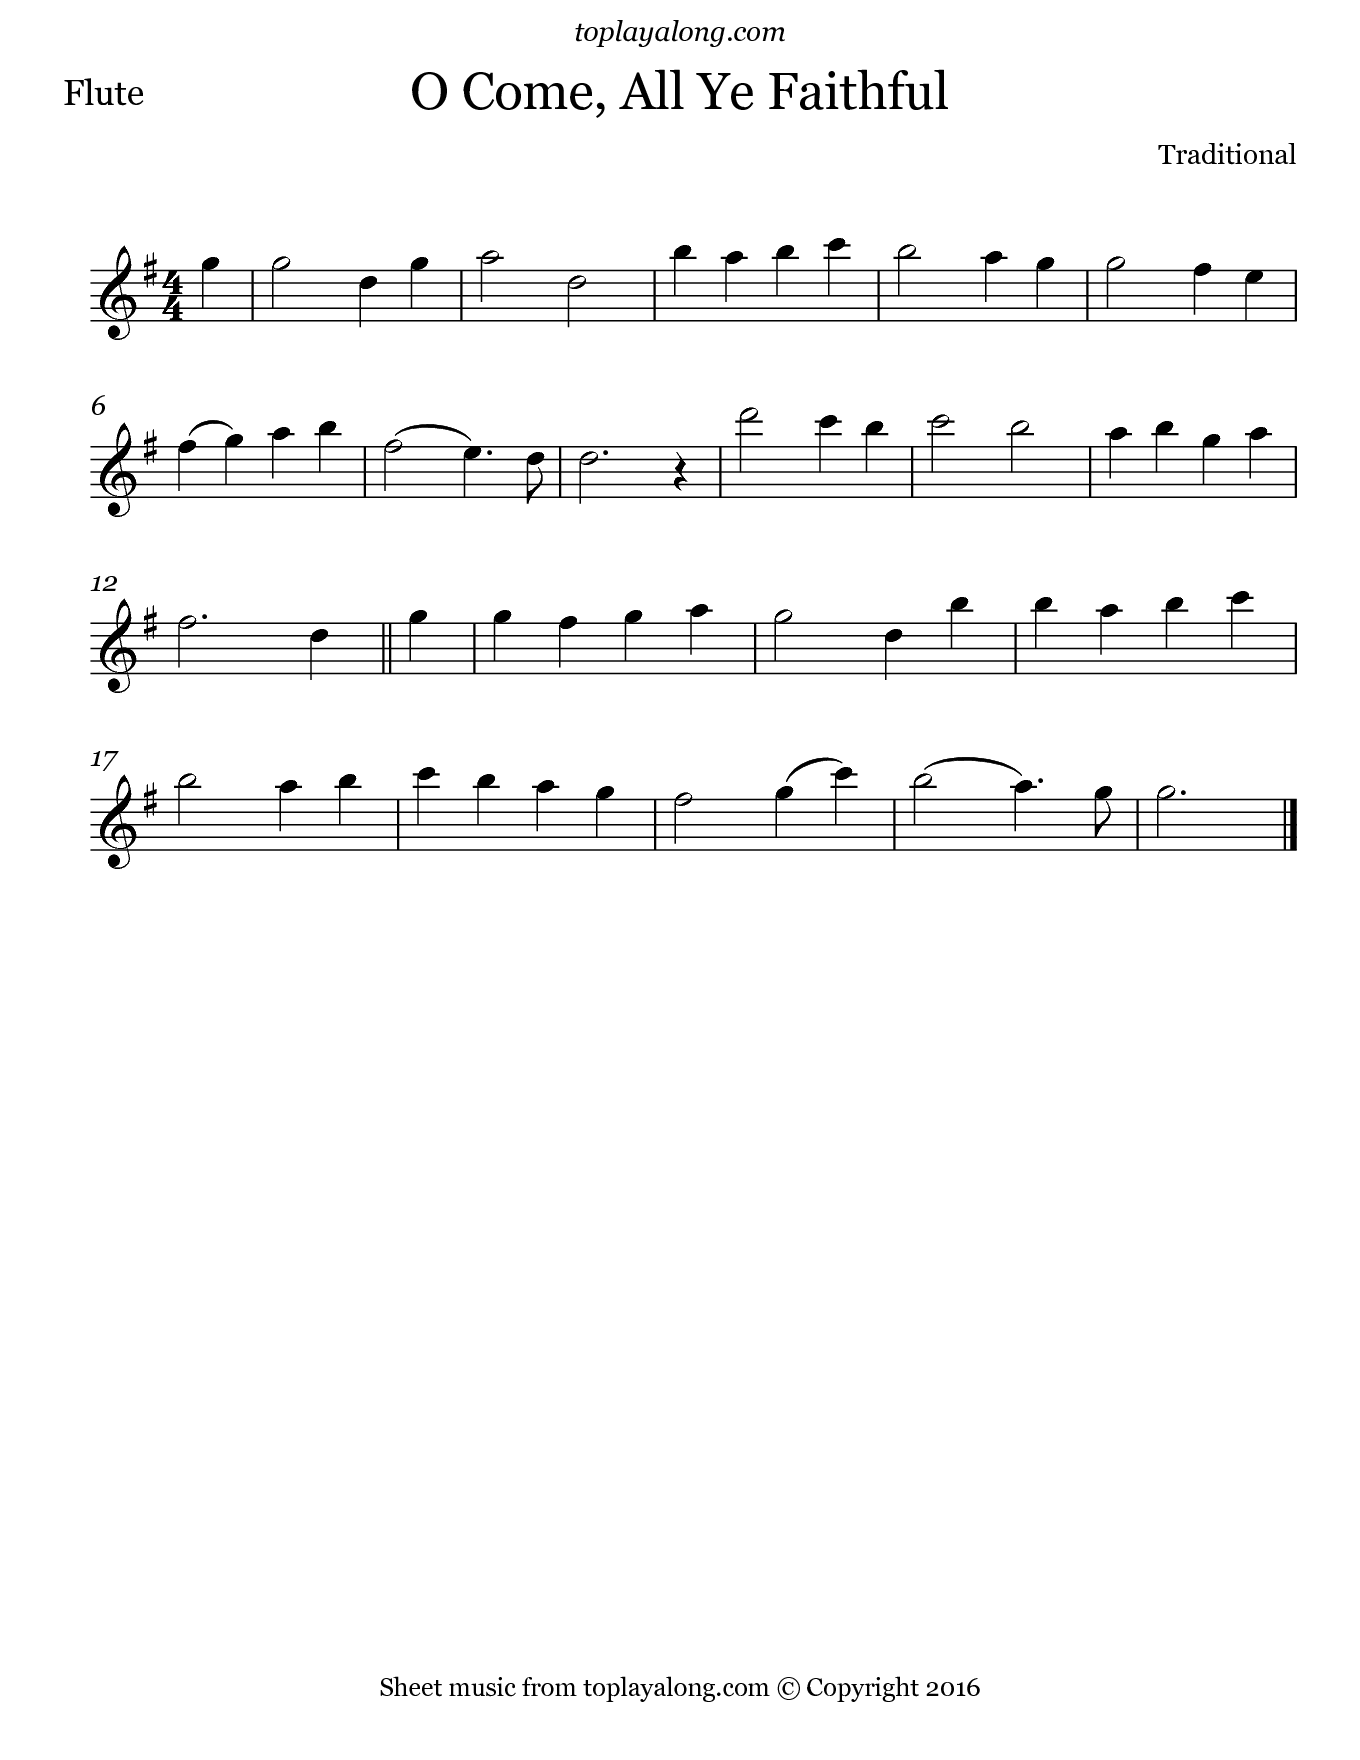 O Come, All Ye Faithful. Sheet music for Flute, page 1.